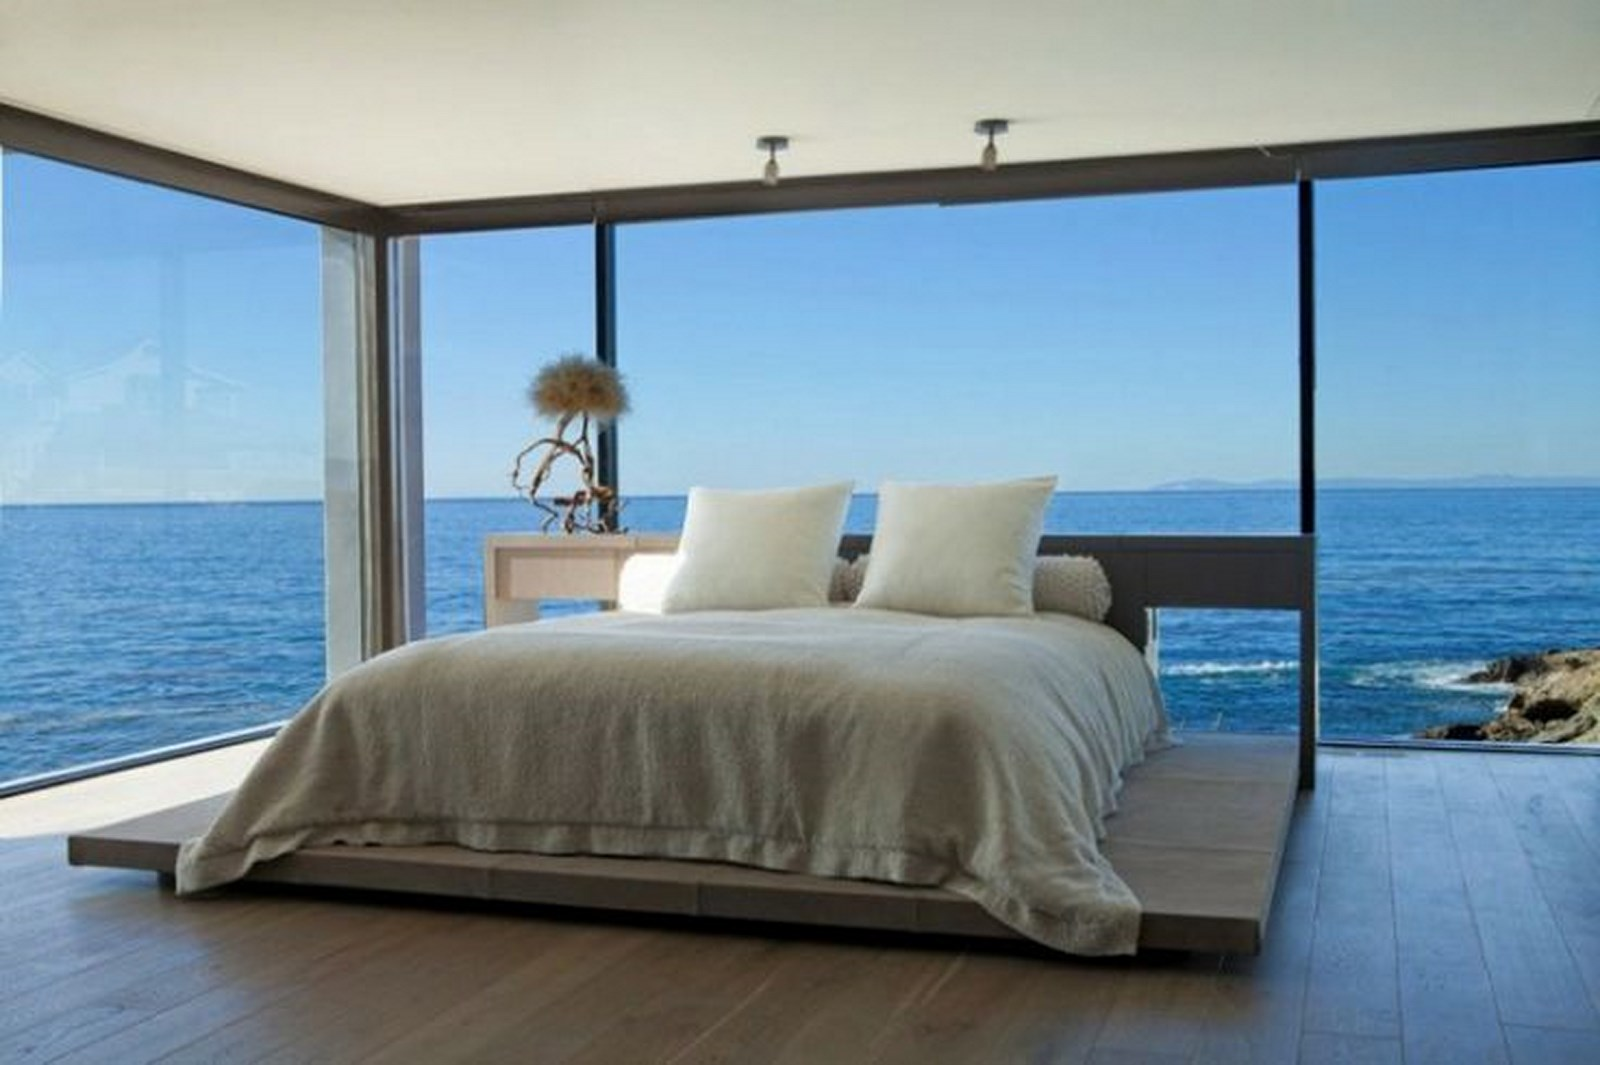 18 Really Amazing Bedroom Ideas WIth Glass Wall To Enjoy ... on Amazing Bedroom Ideas  id=94480